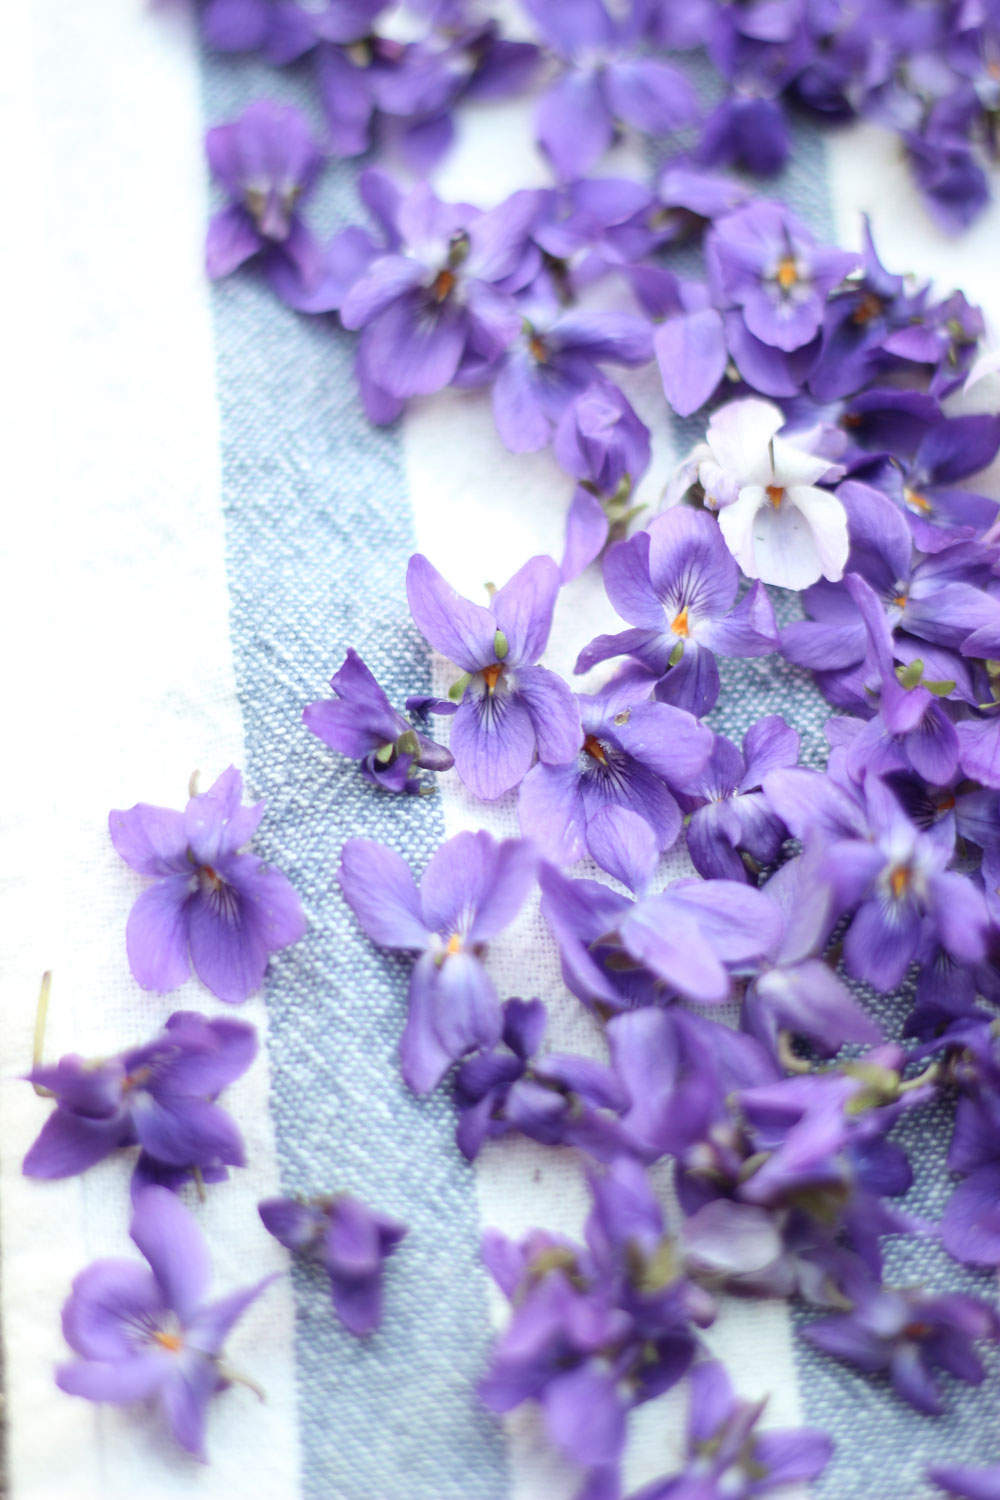 violets-on-towel